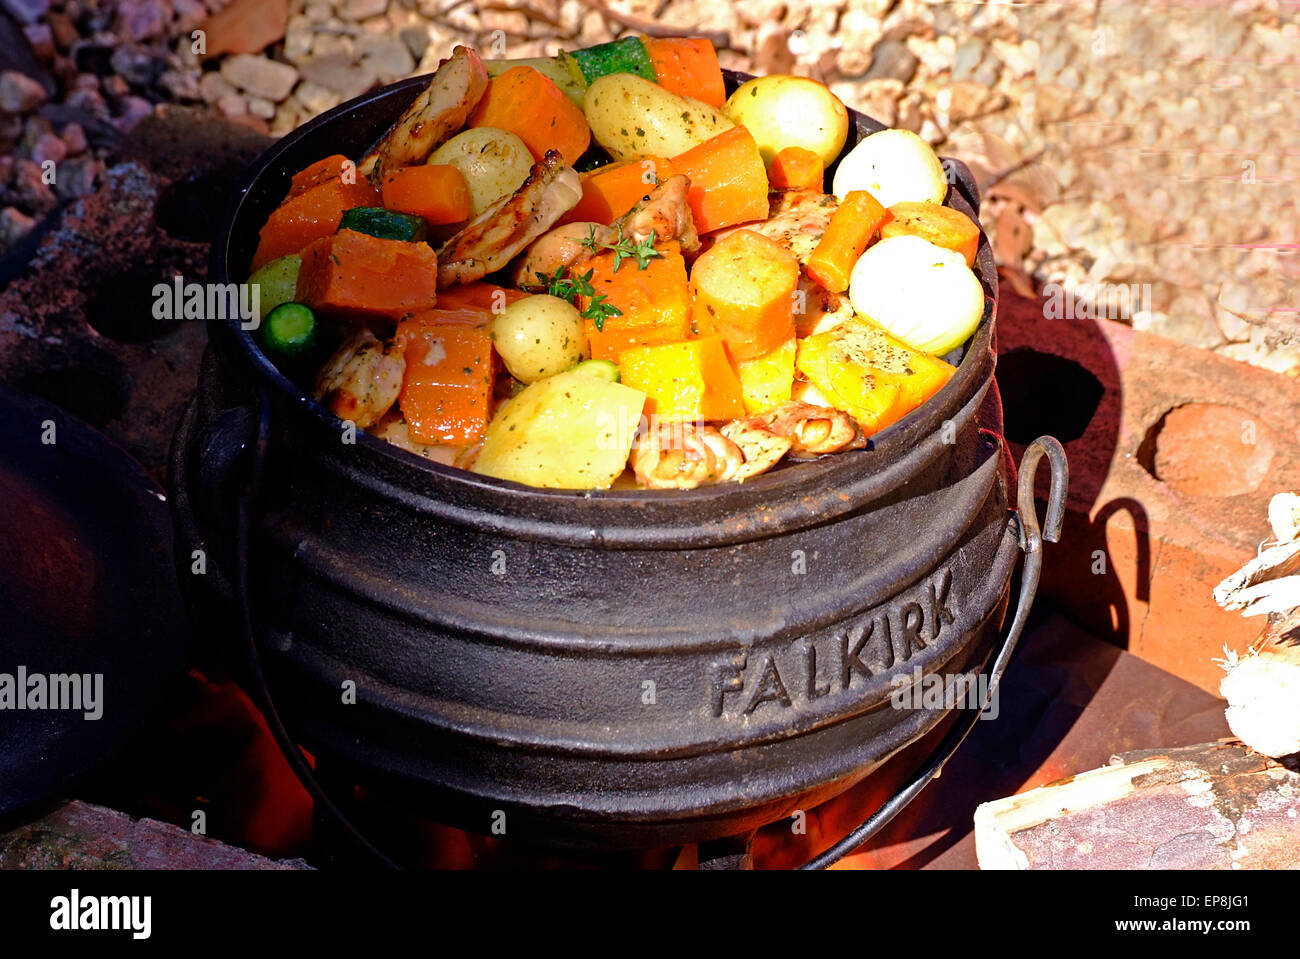 Enjoy camping food recipes and resources from Scouts all over the world. Find dutch oven recipes, ideas for cooking without utensils, base camp meals, trail food, and more.